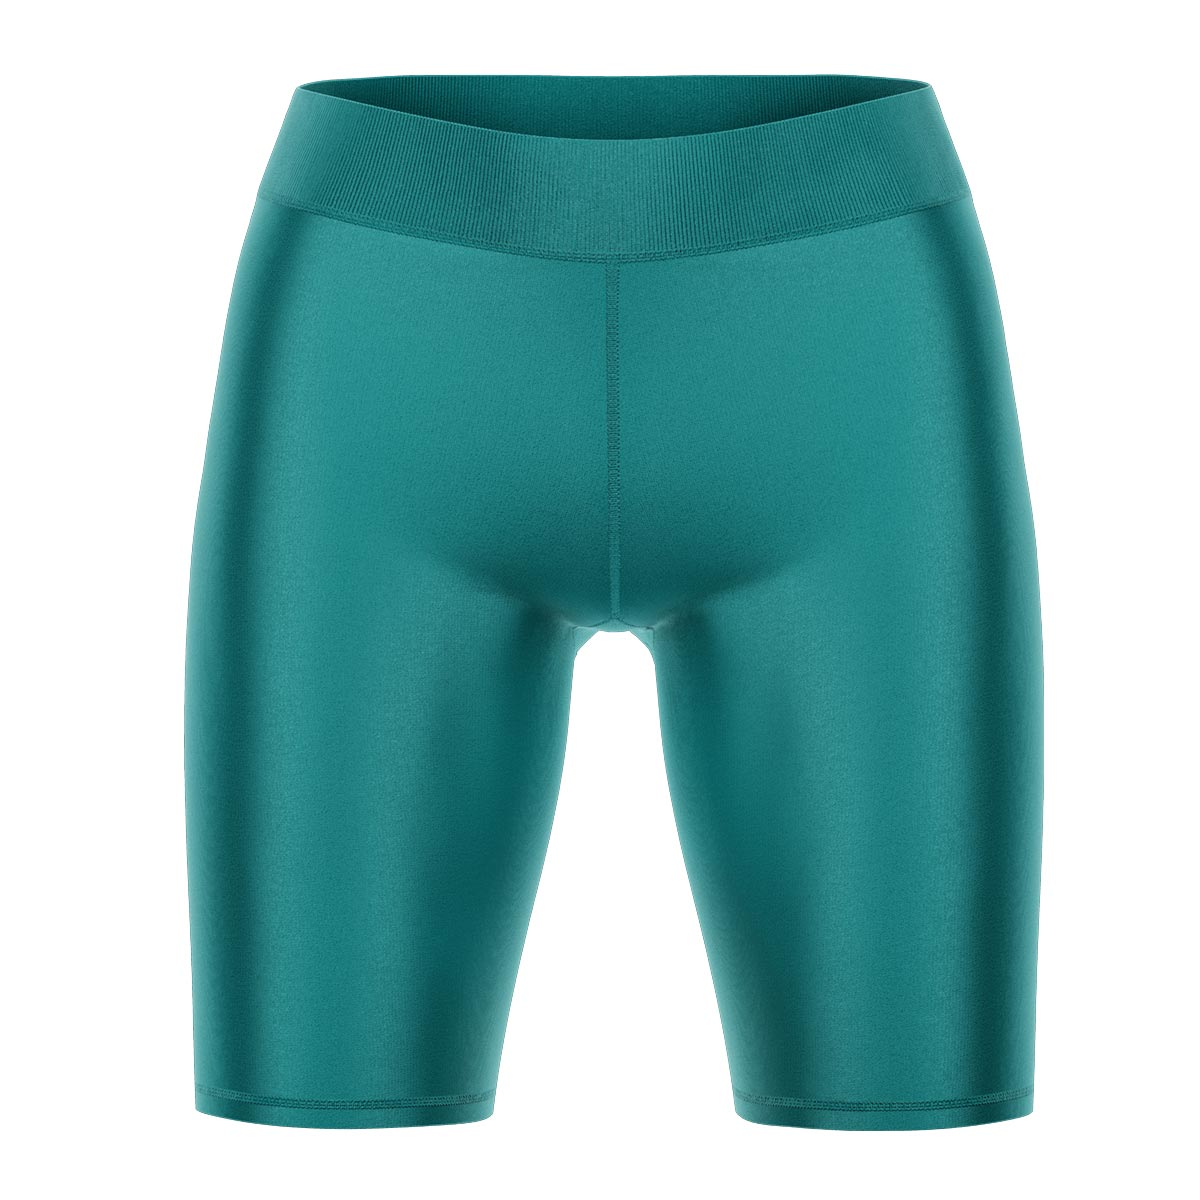 Teal Yoga Shorts